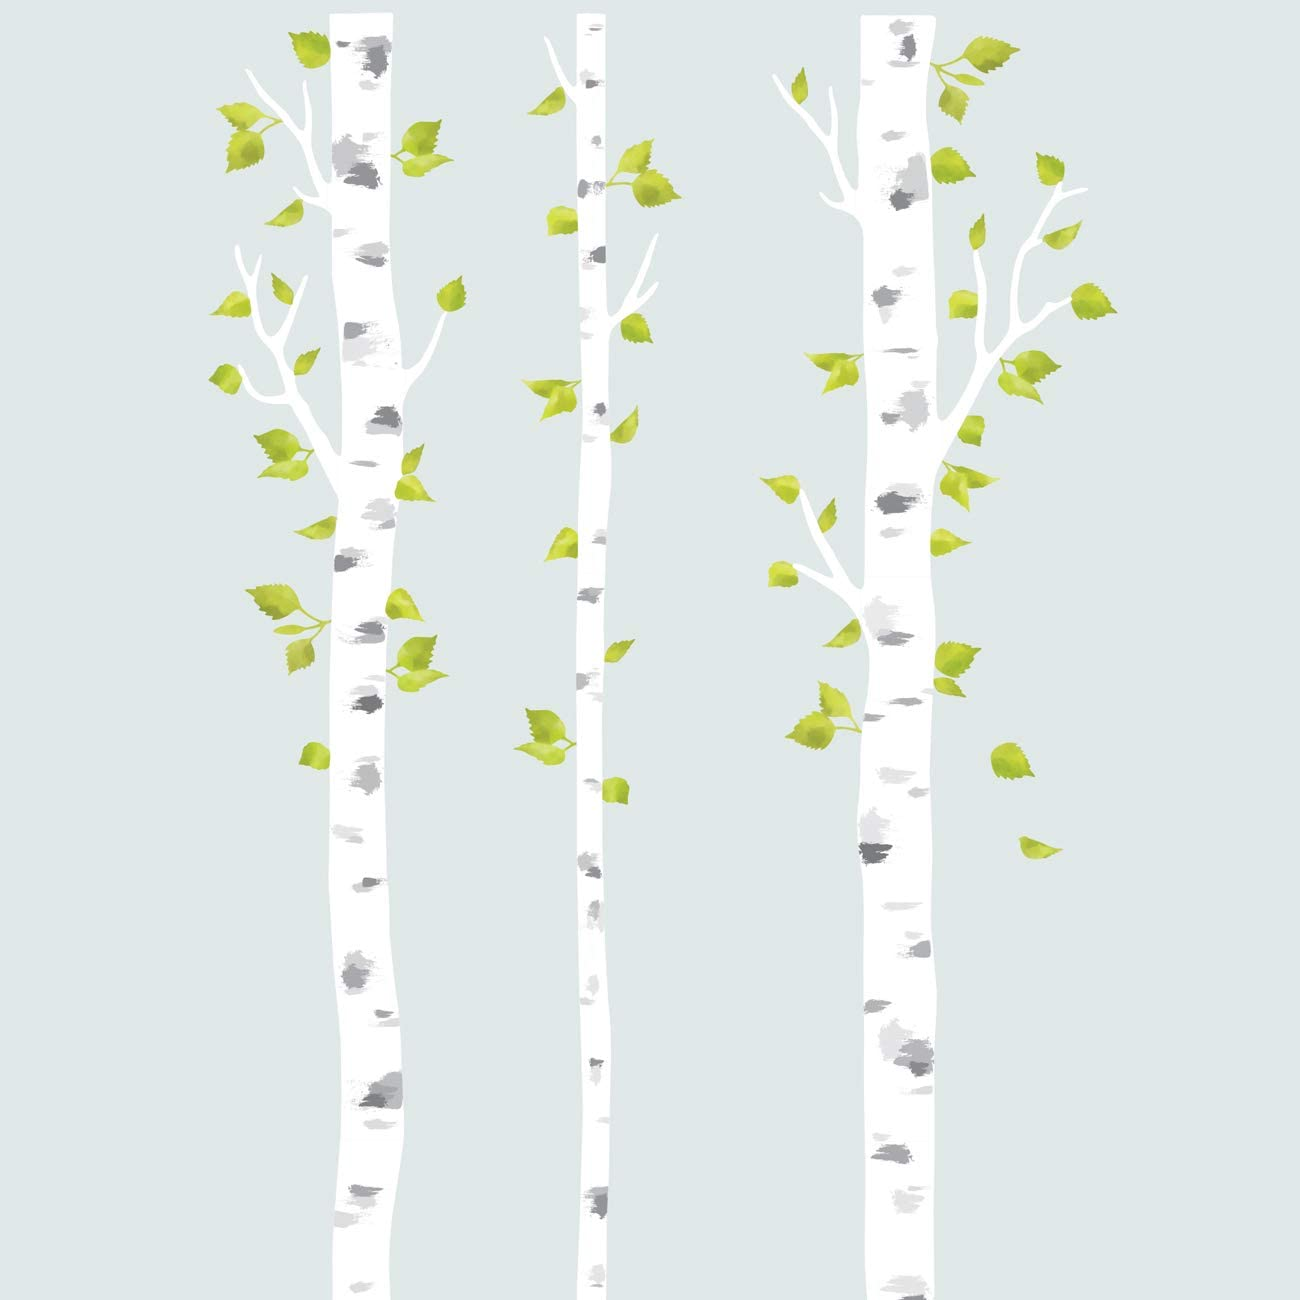 DECOWALL DLT-1714 White Birch Trees Fabric Wall Decals Wall Stickers Removable Reusable Peel and Stick for Kids Nursery Bedroom Living Room décor